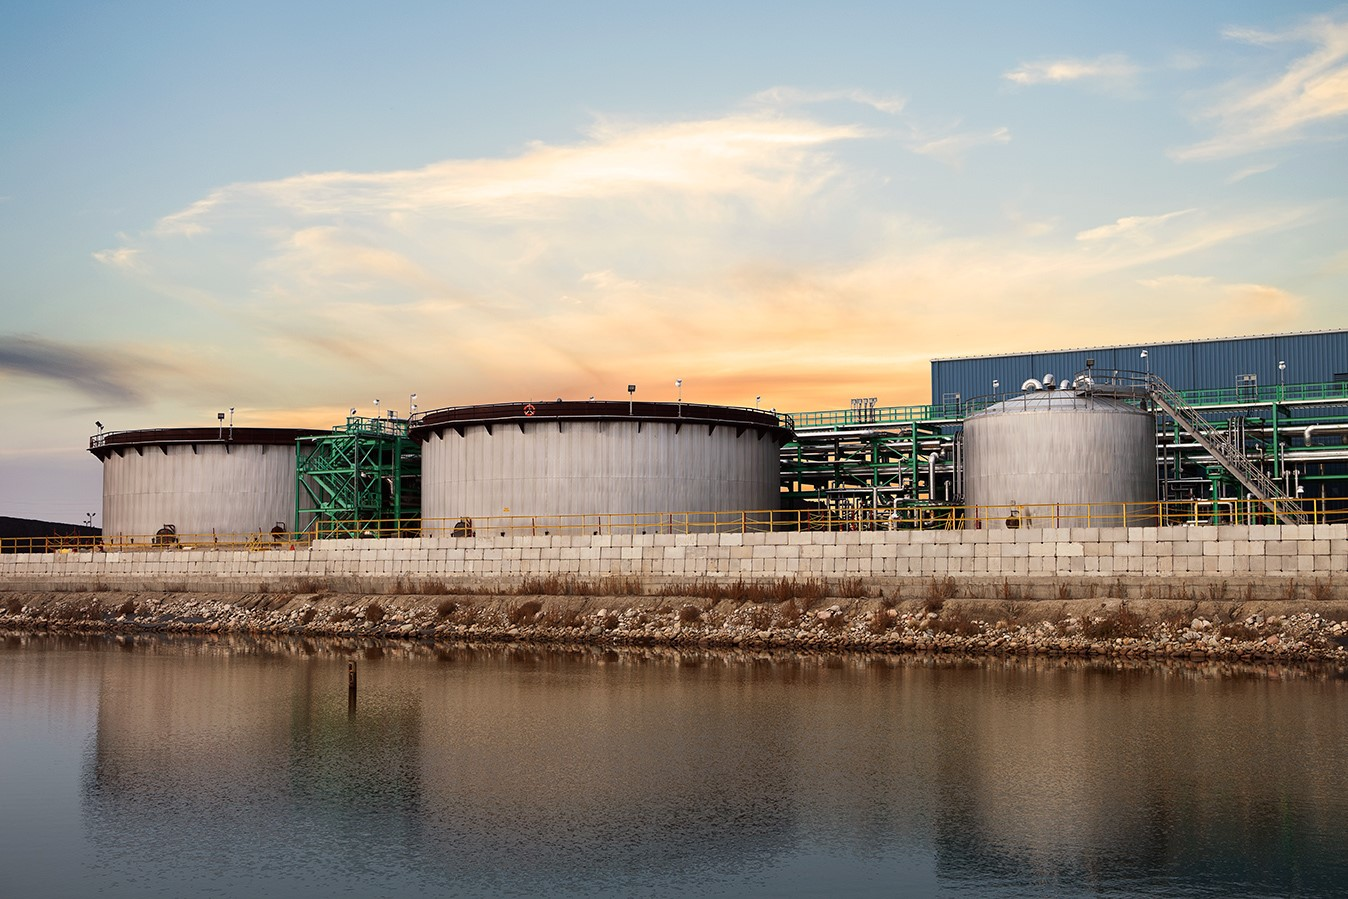 Co-op Refinery Complex named Industrial Water Project of the Year